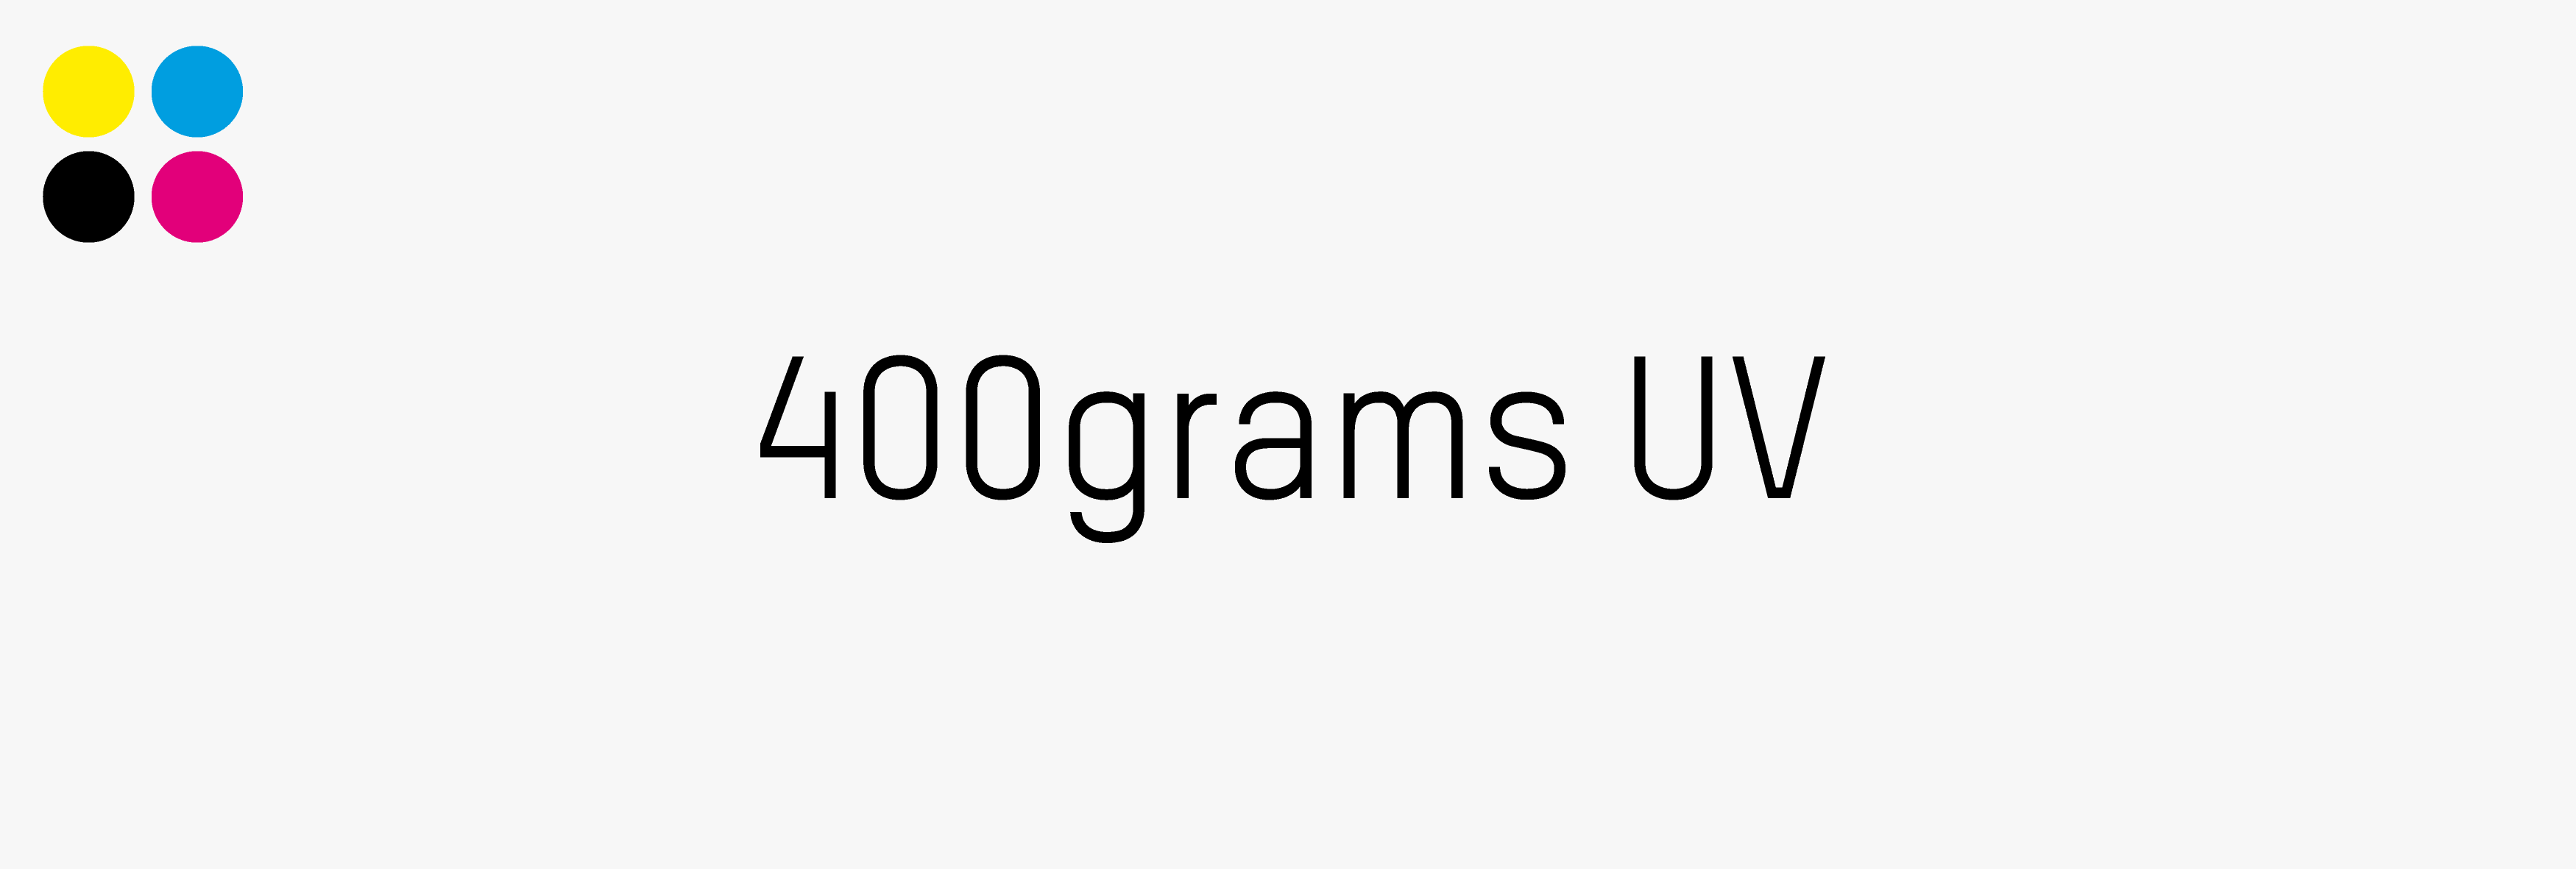 400grams-UV